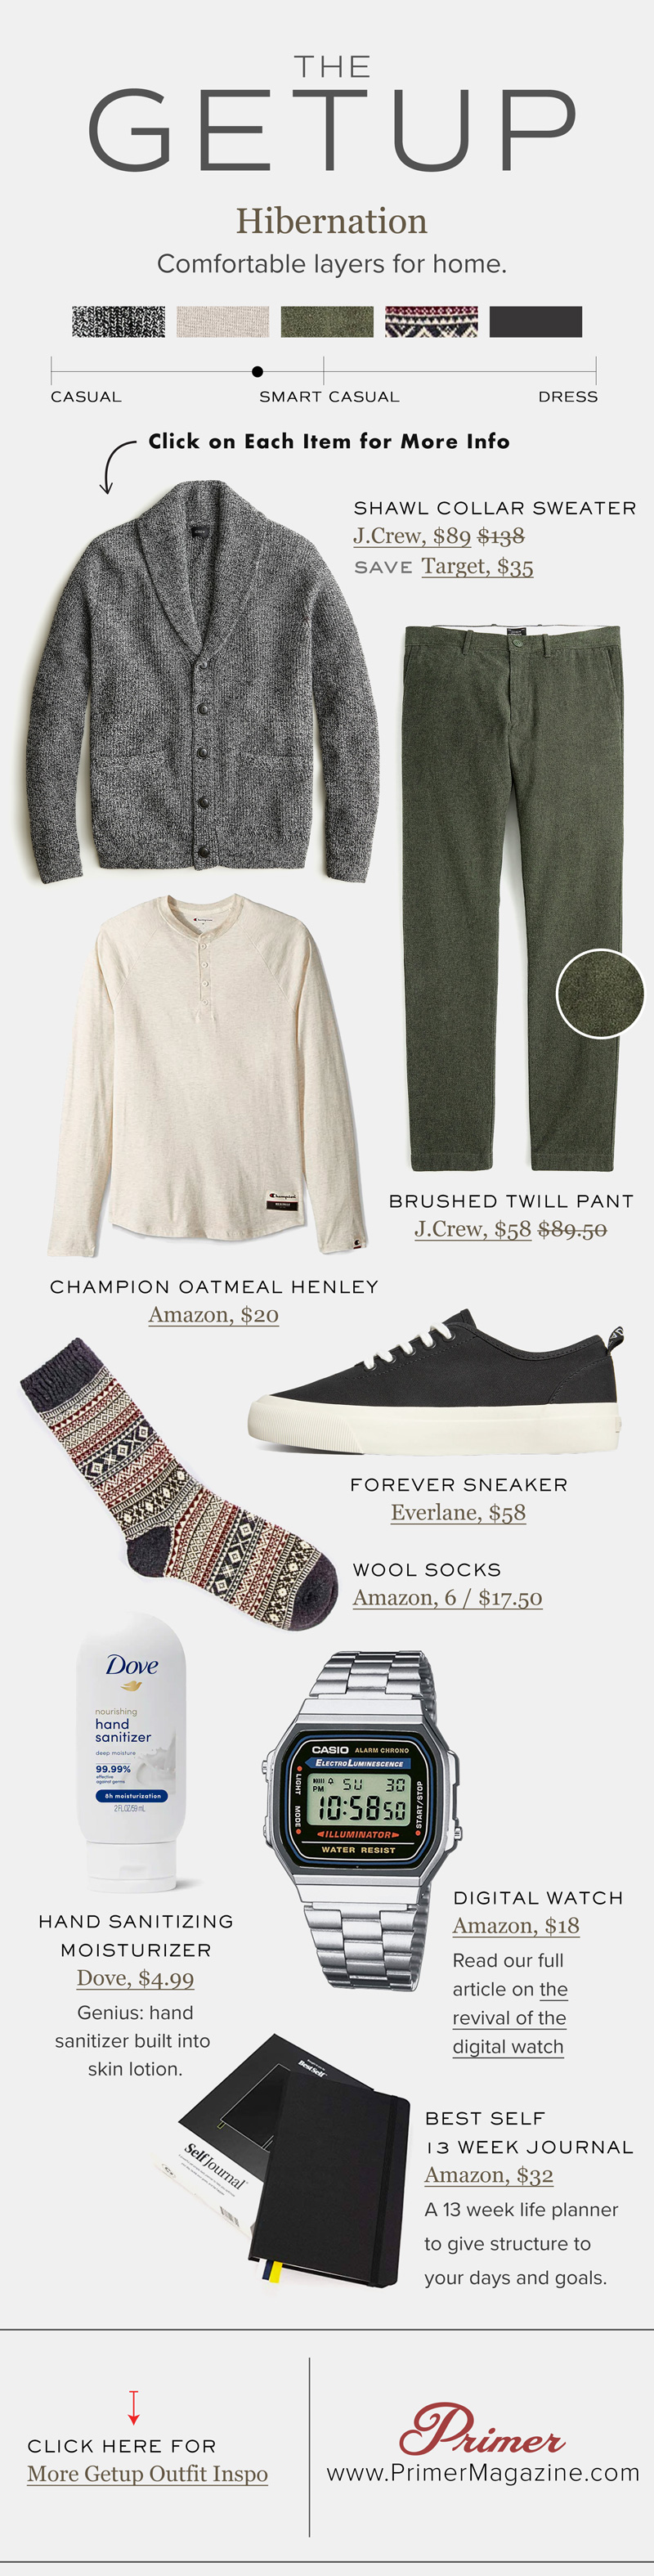 the getup hibernation shawl collar sweater with henley and green chinos fall outfit